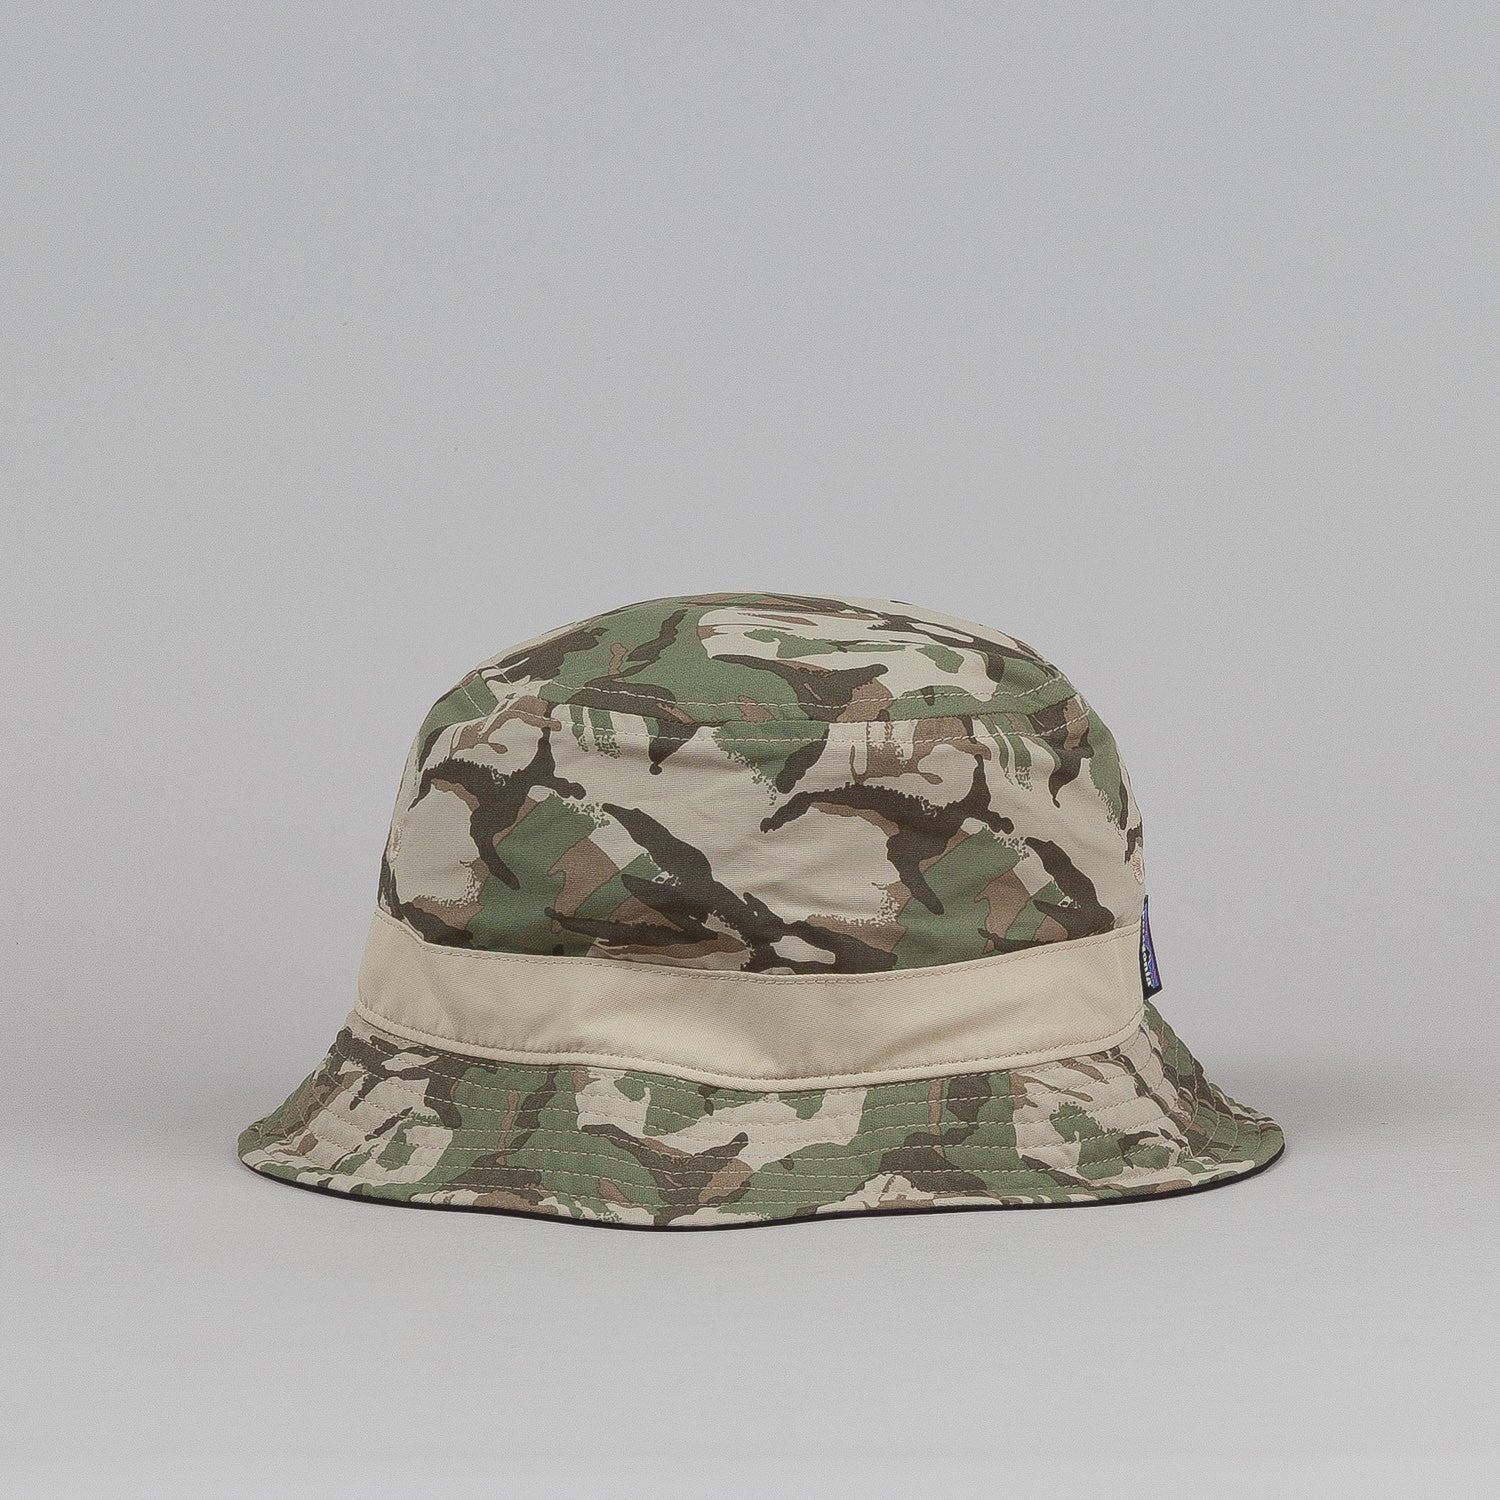 Patagonia Wavefarer Bucket Hat - Painted Camo Camp Green